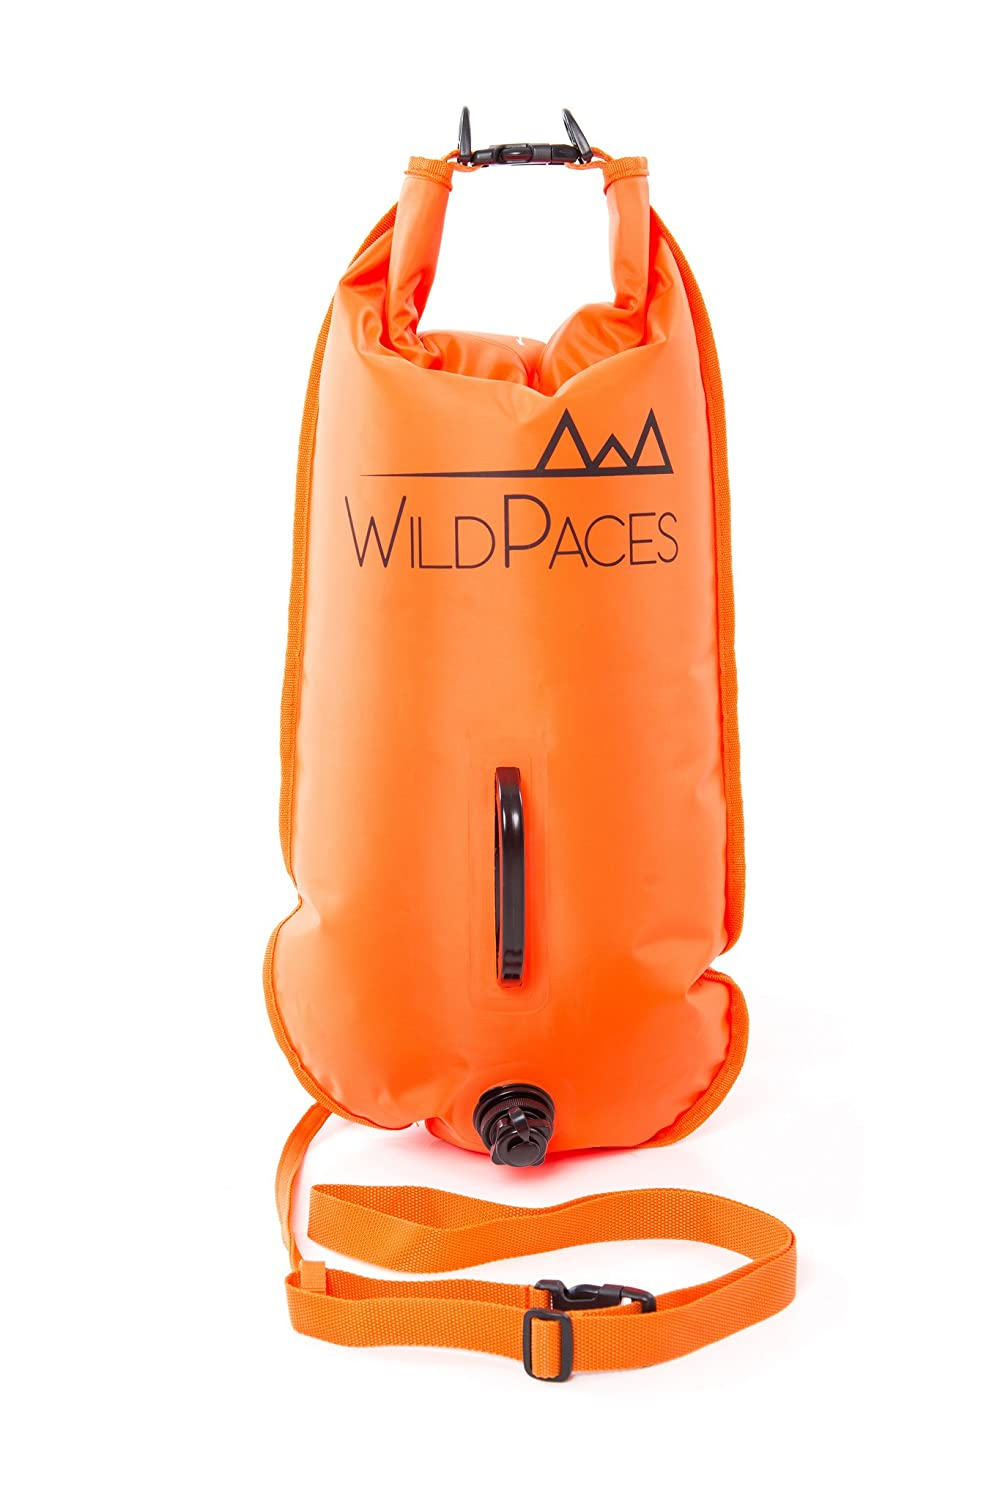 3237e8f47e WildPaces 28L Swim Buoy Safety Tow Float High Visibility Inflatable Dry Bag  Ideal for Wild Swimming Open Water SwimRun Cross Trail Training Kayaking  Fishing ...